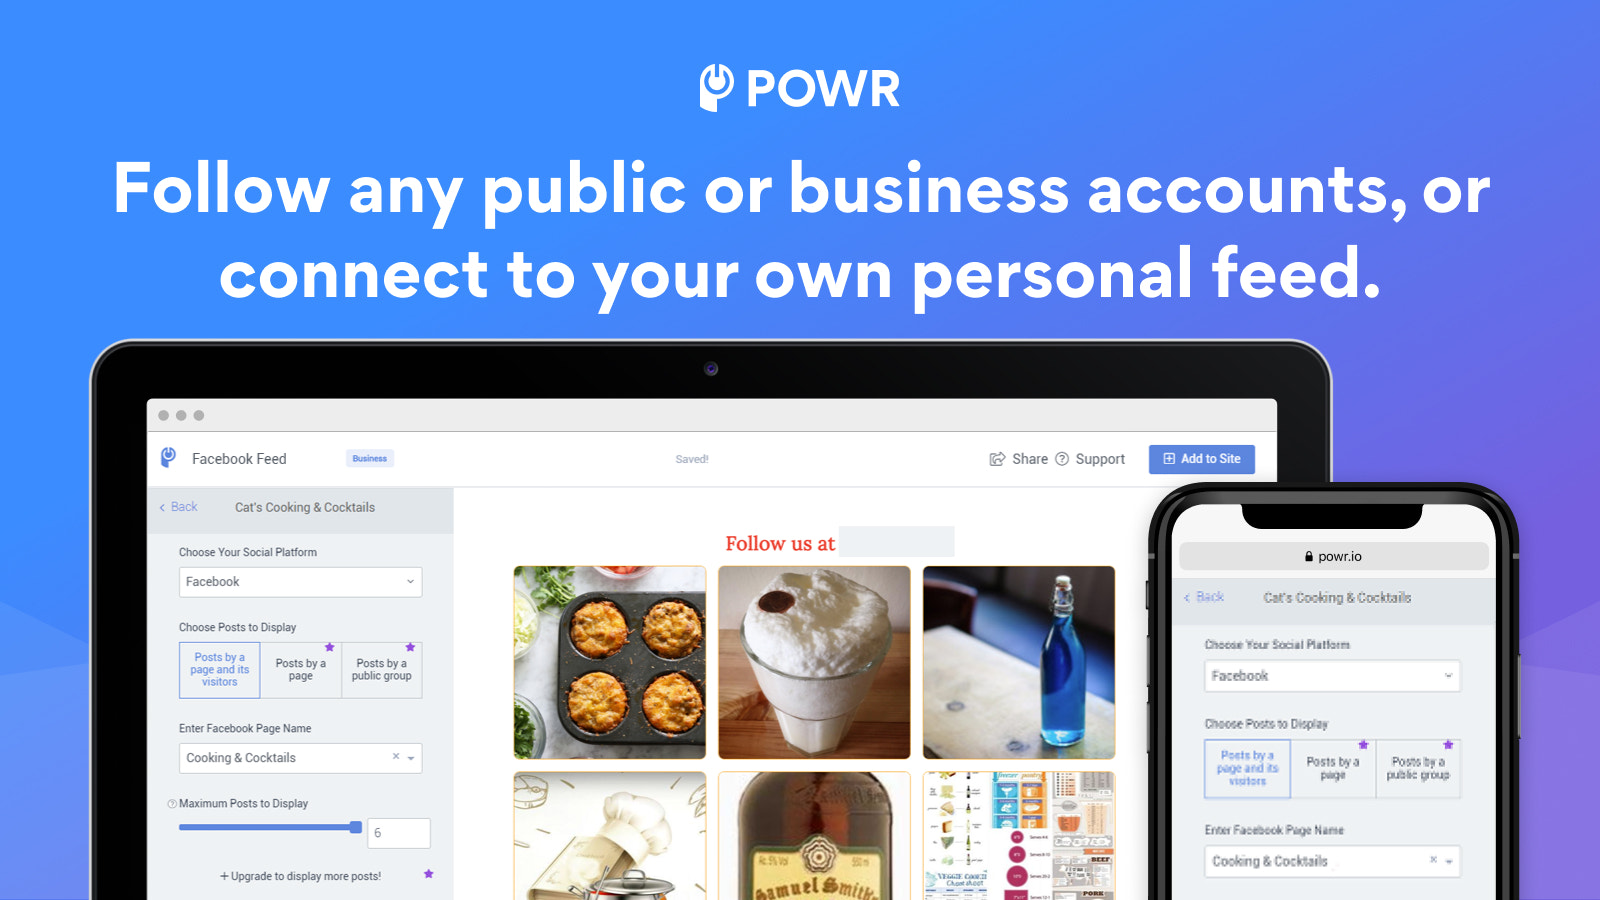 Follow any public or business account.